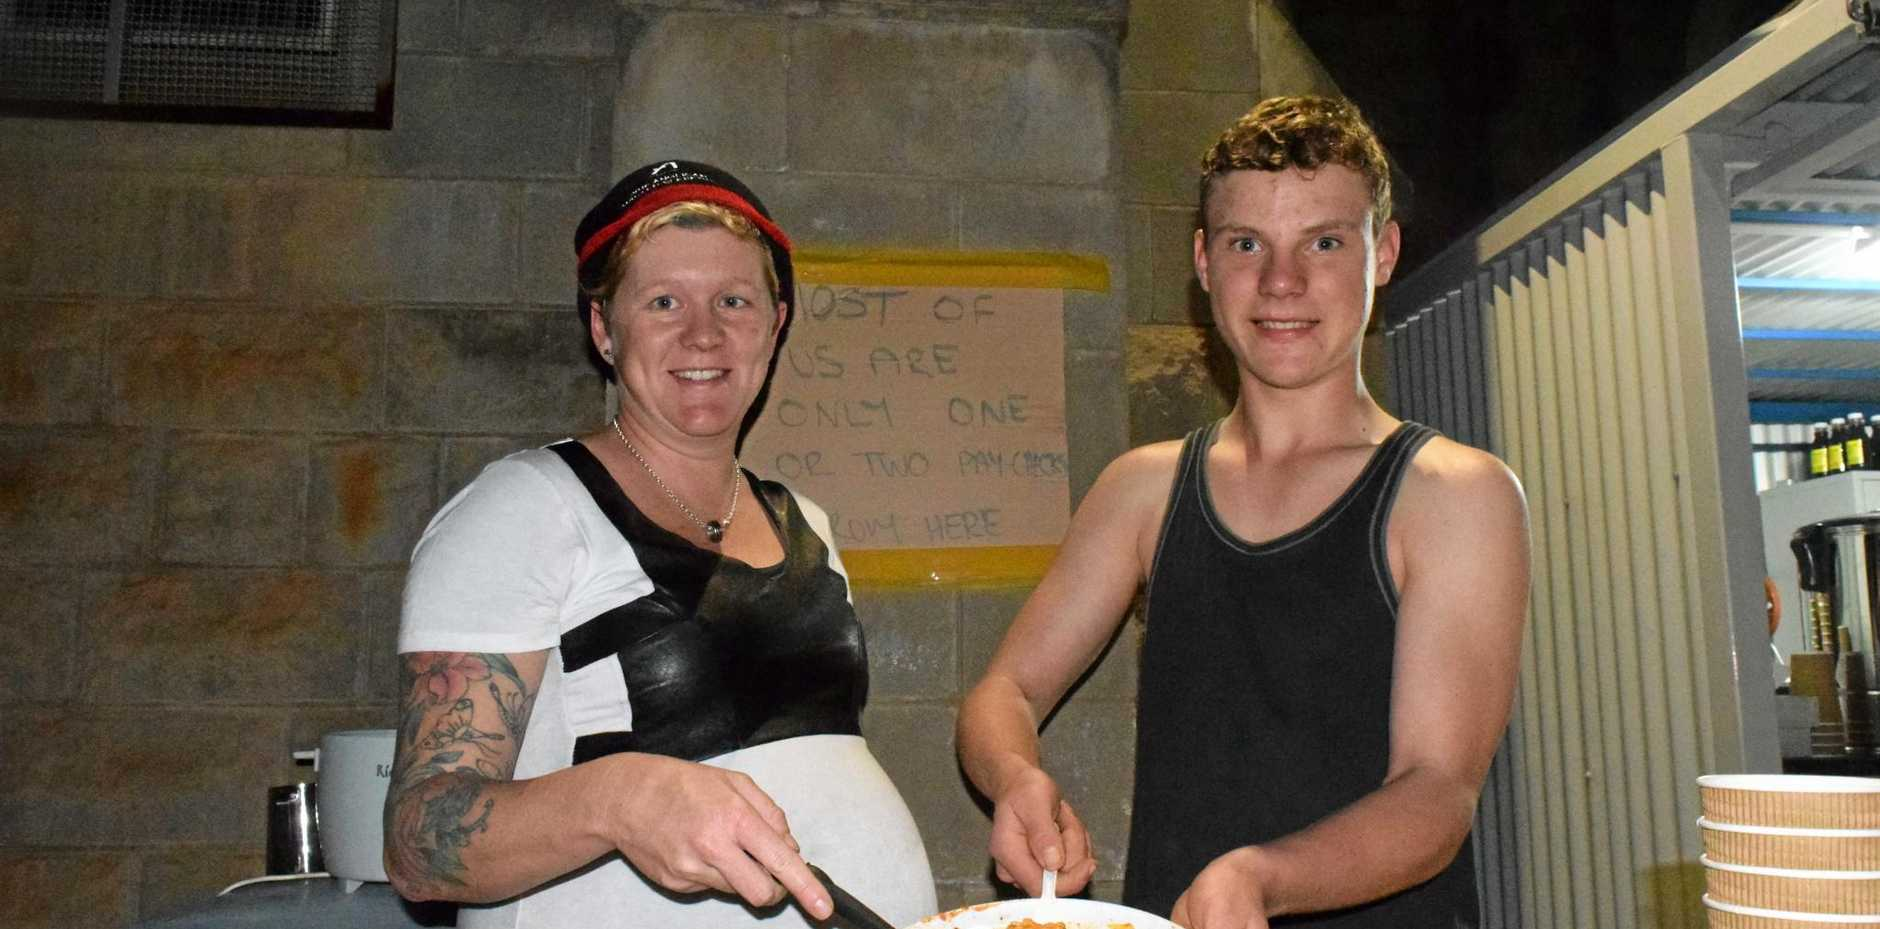 MEAL TIME: Anglicare's Toni Smith serves sleepout participant Baringa a hot meal at the Anglican Sleepout on Friday night.